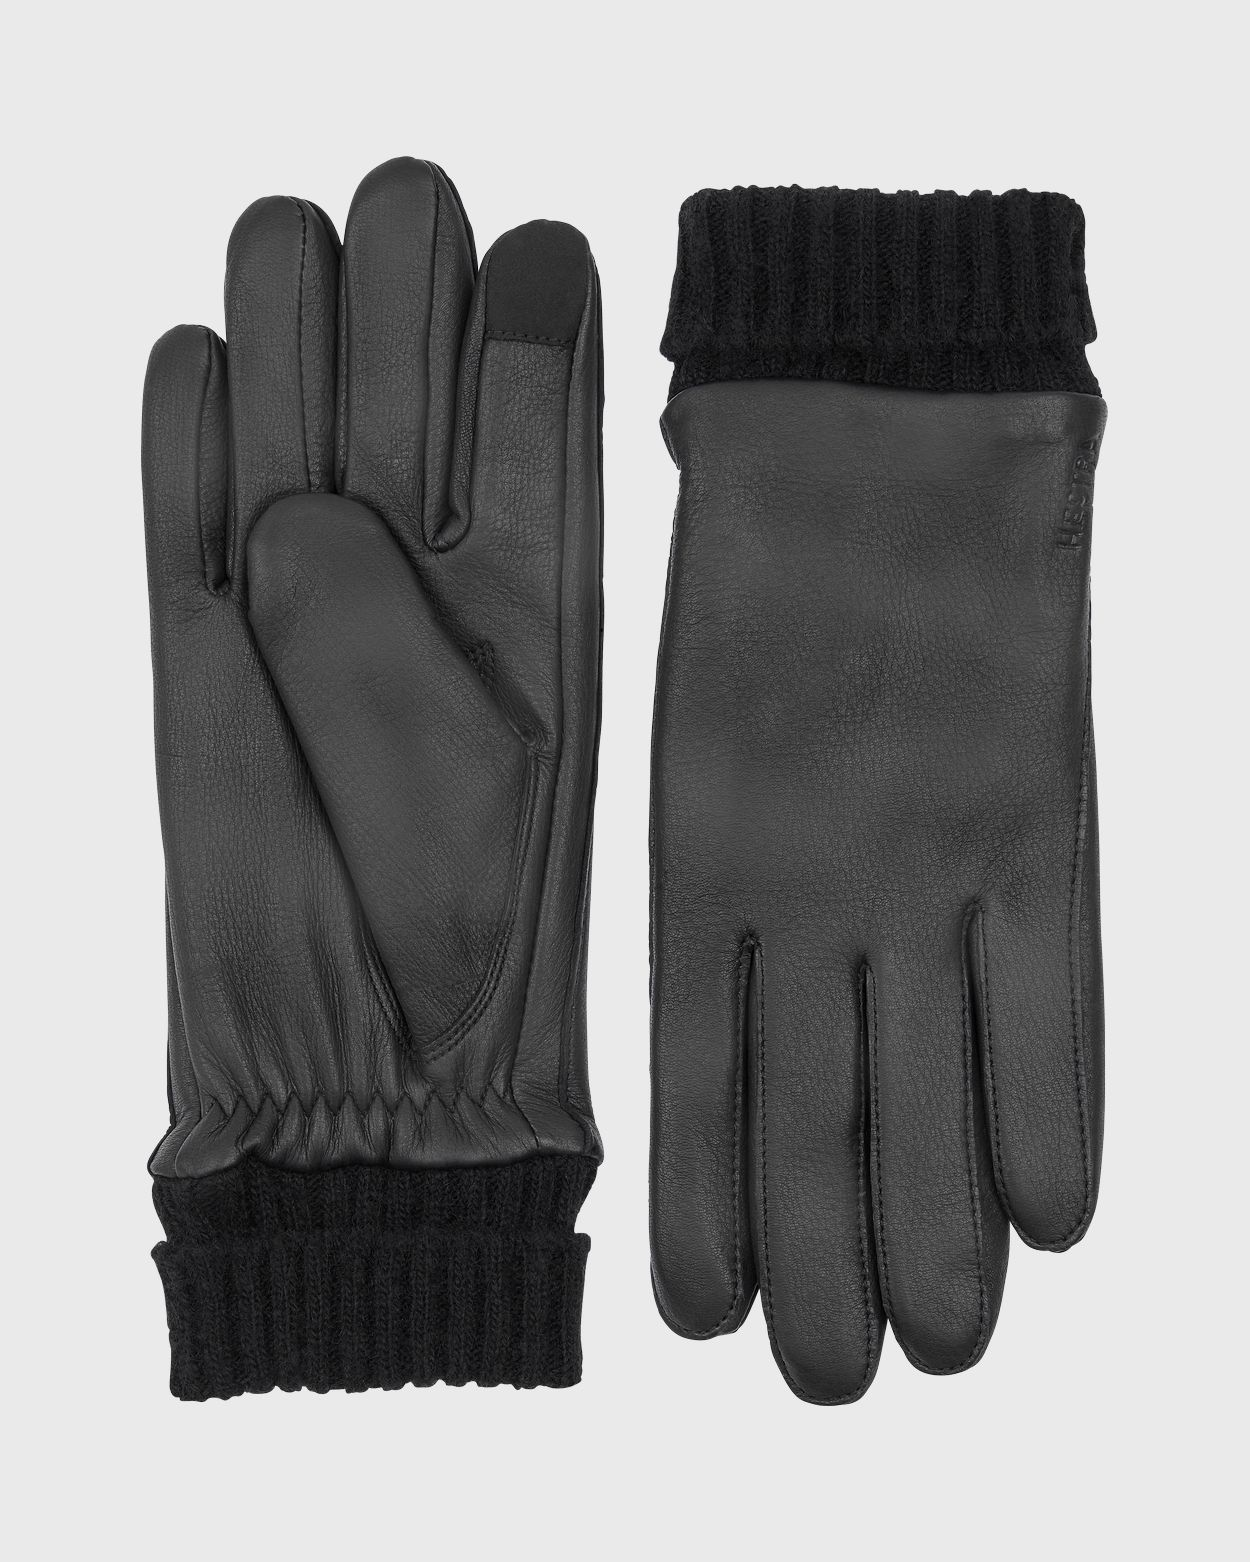 Liv Ladies Glove Gloves Hestra Black 6